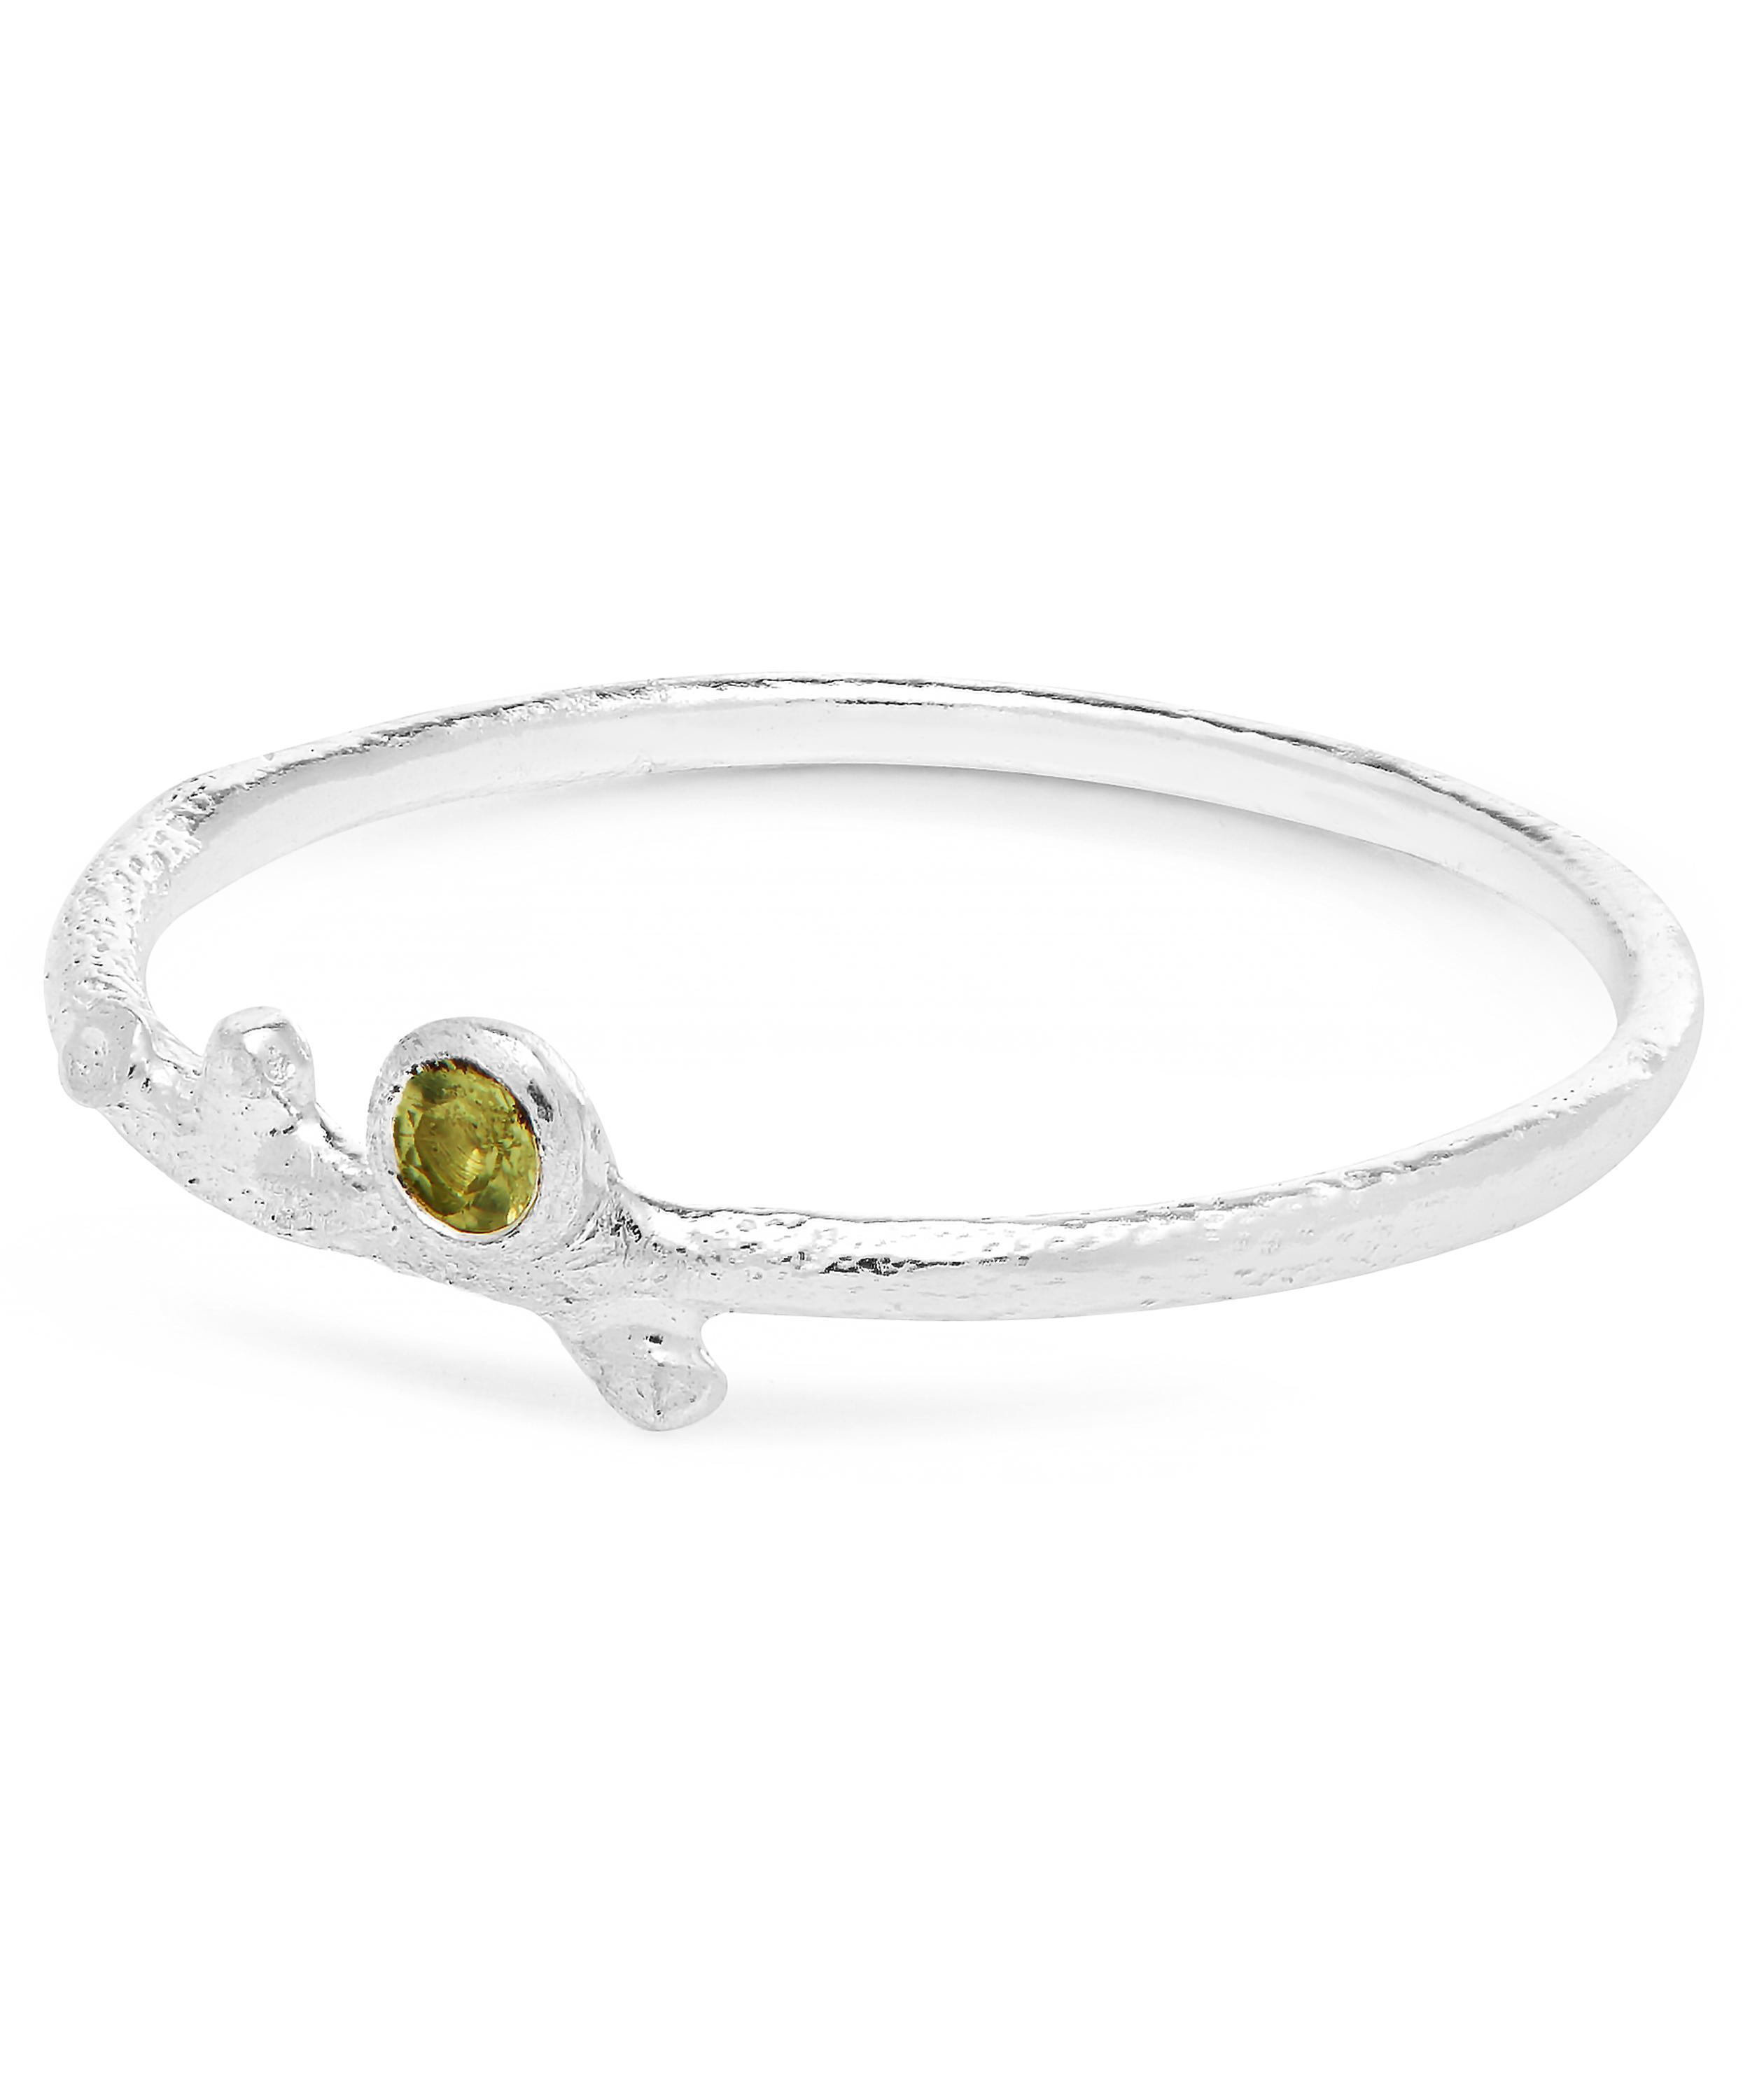 dced436f9 Lyst - Alex Monroe Silver Underwater Peridot Stacking Ring in Metallic